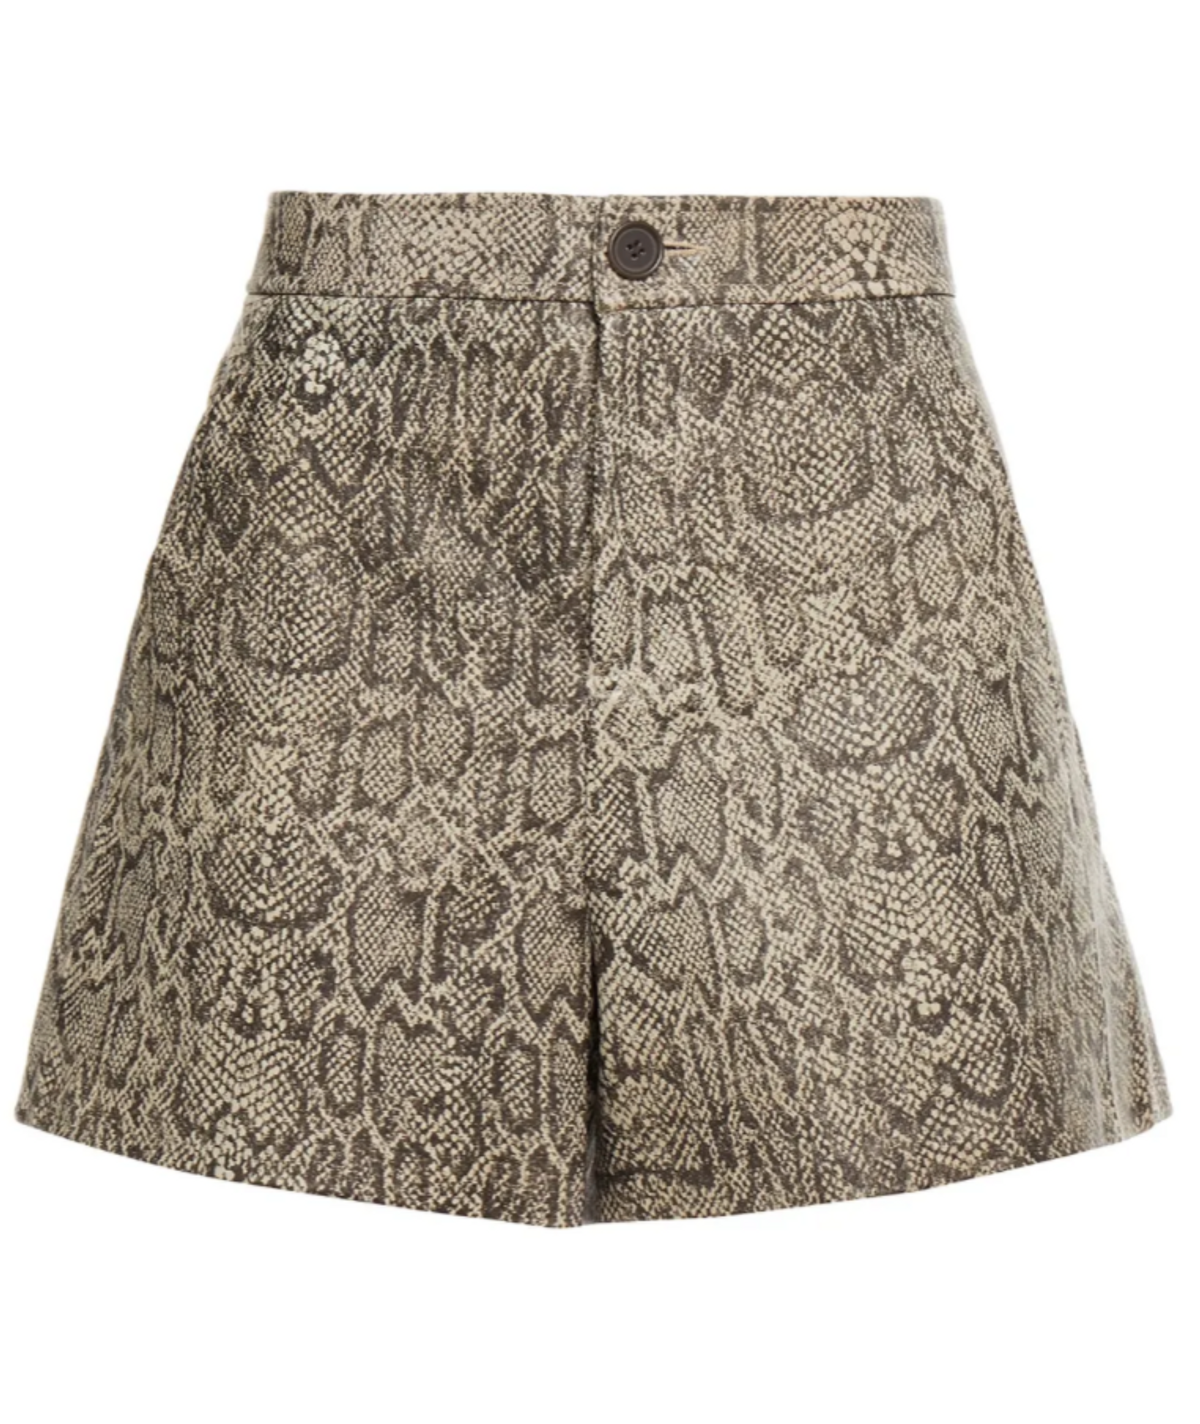 Abreal Snake Print Leather Shorts